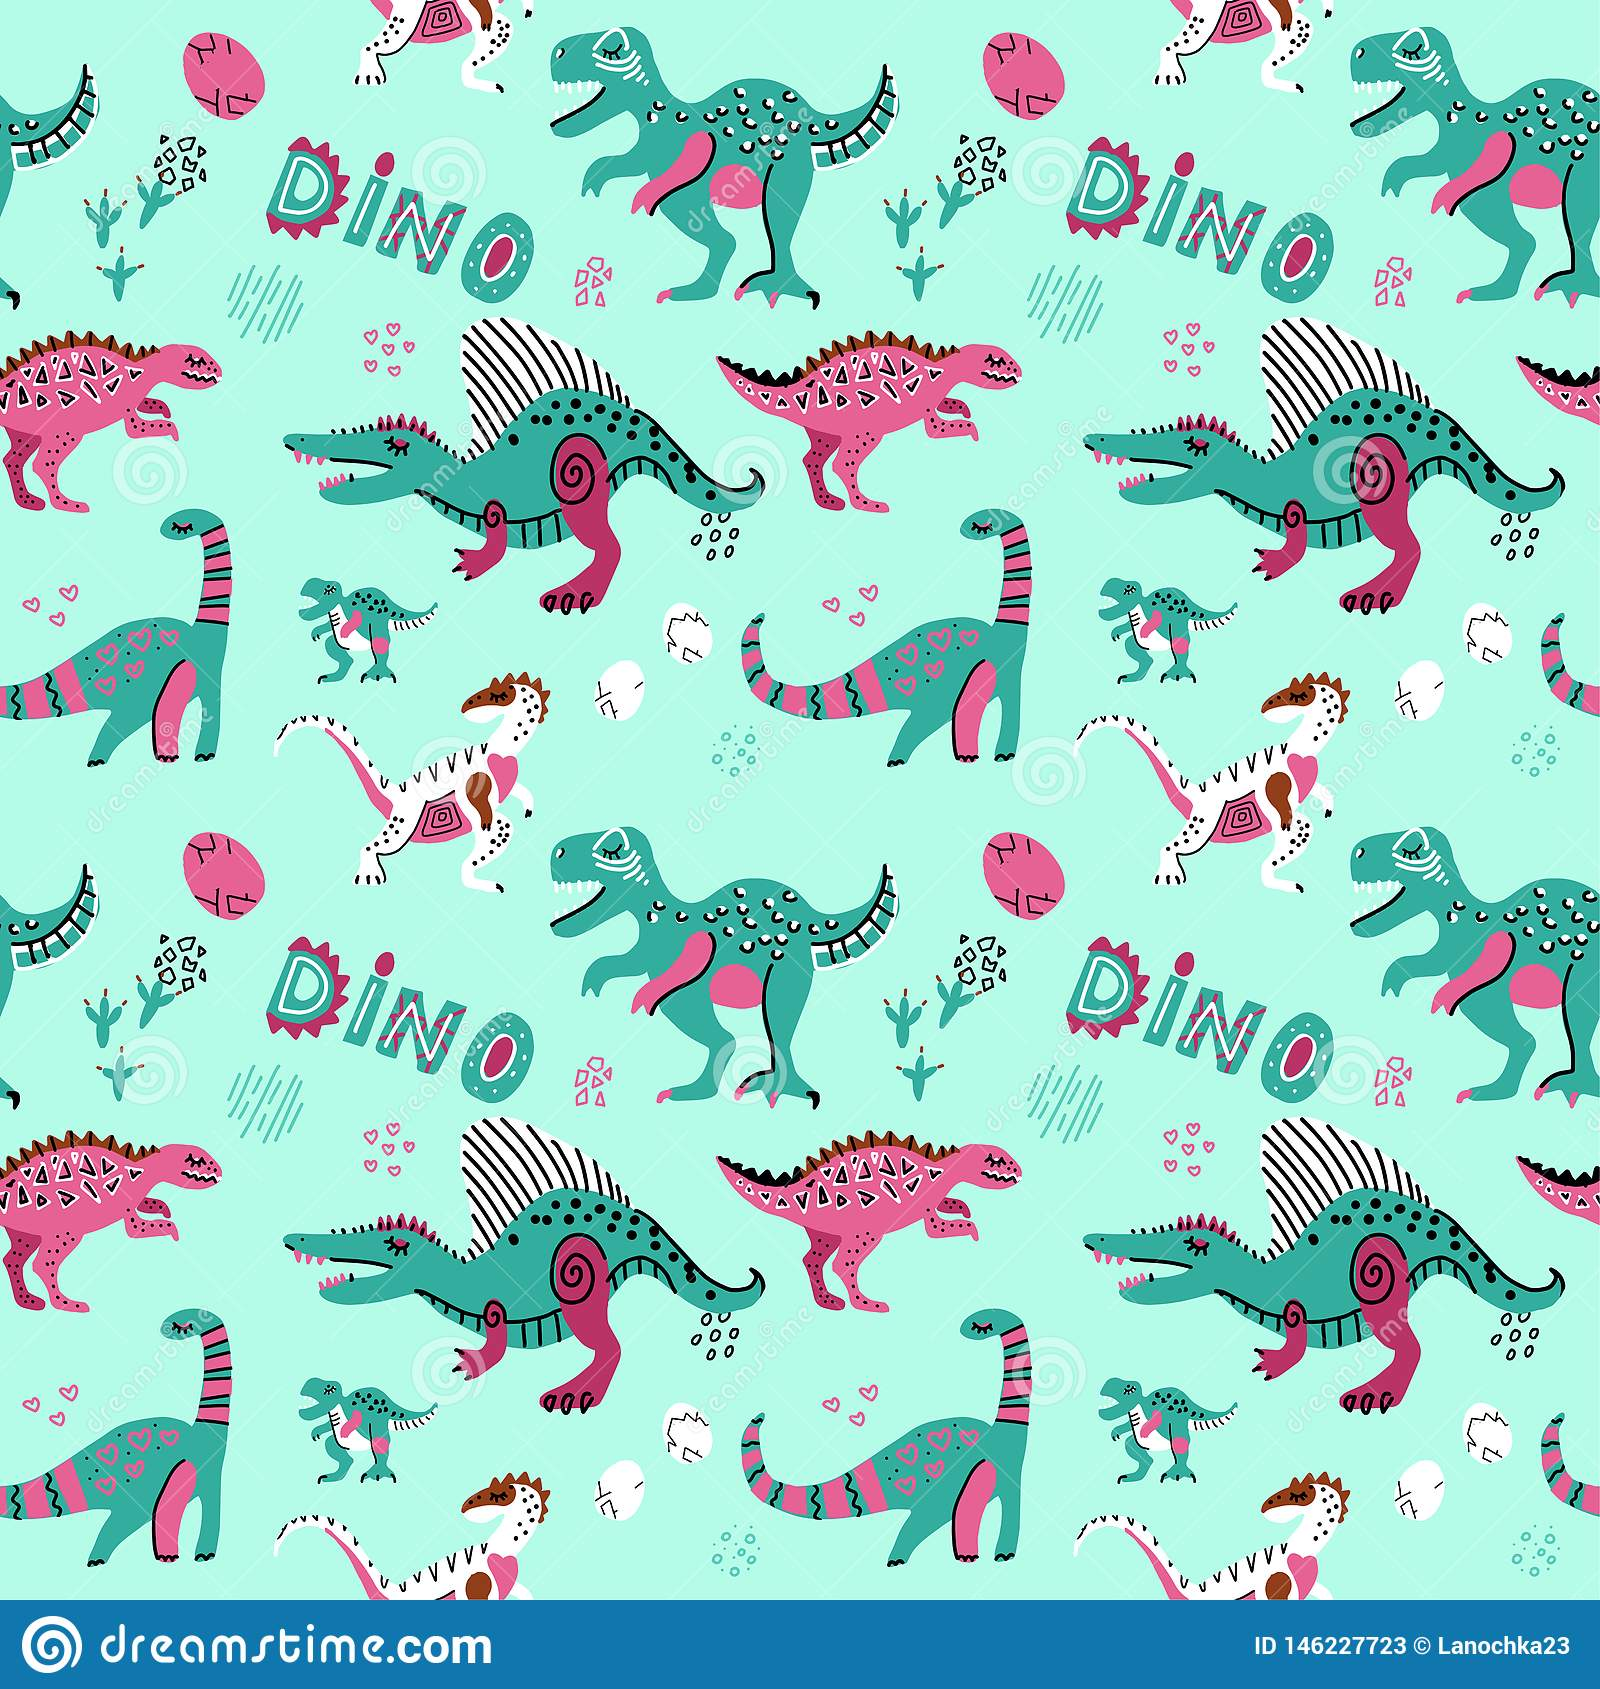 Cute childish seamless vector pattern with dinosaurswith eggs, decor and words dino. Funny cartoon dino. Hand drawn doodle design